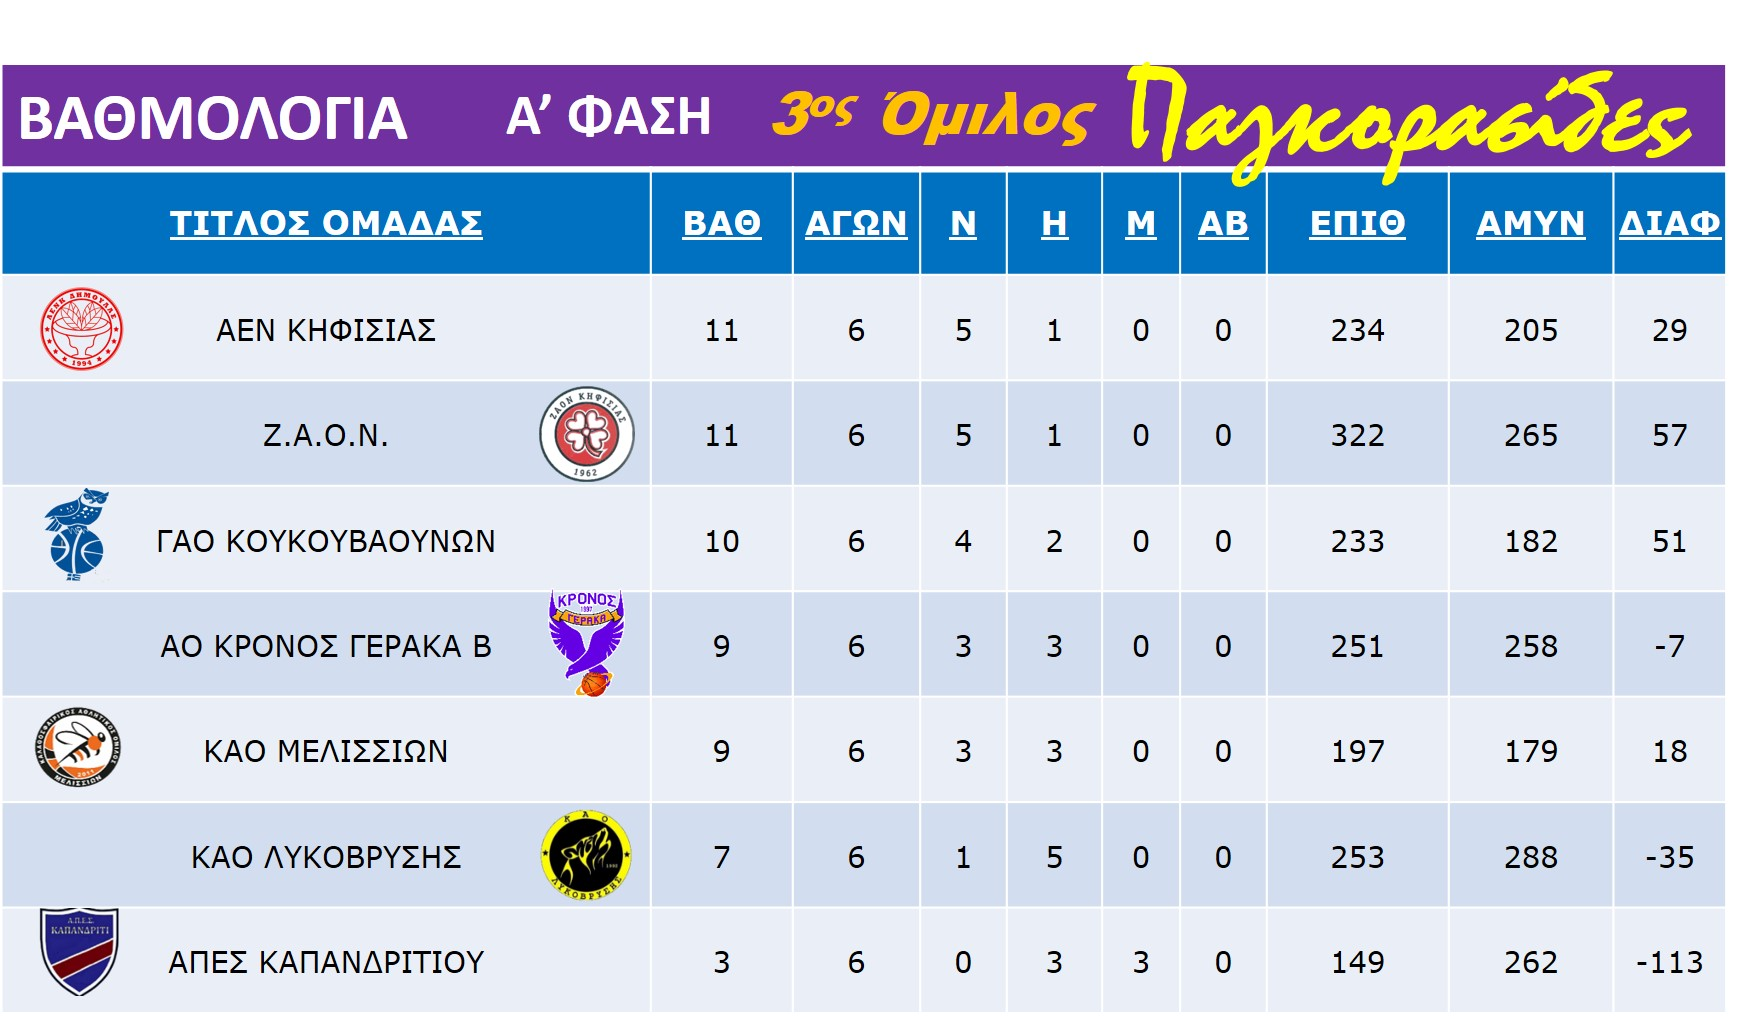 Pagkorasides_3rd_Rank_Table_1-7-7